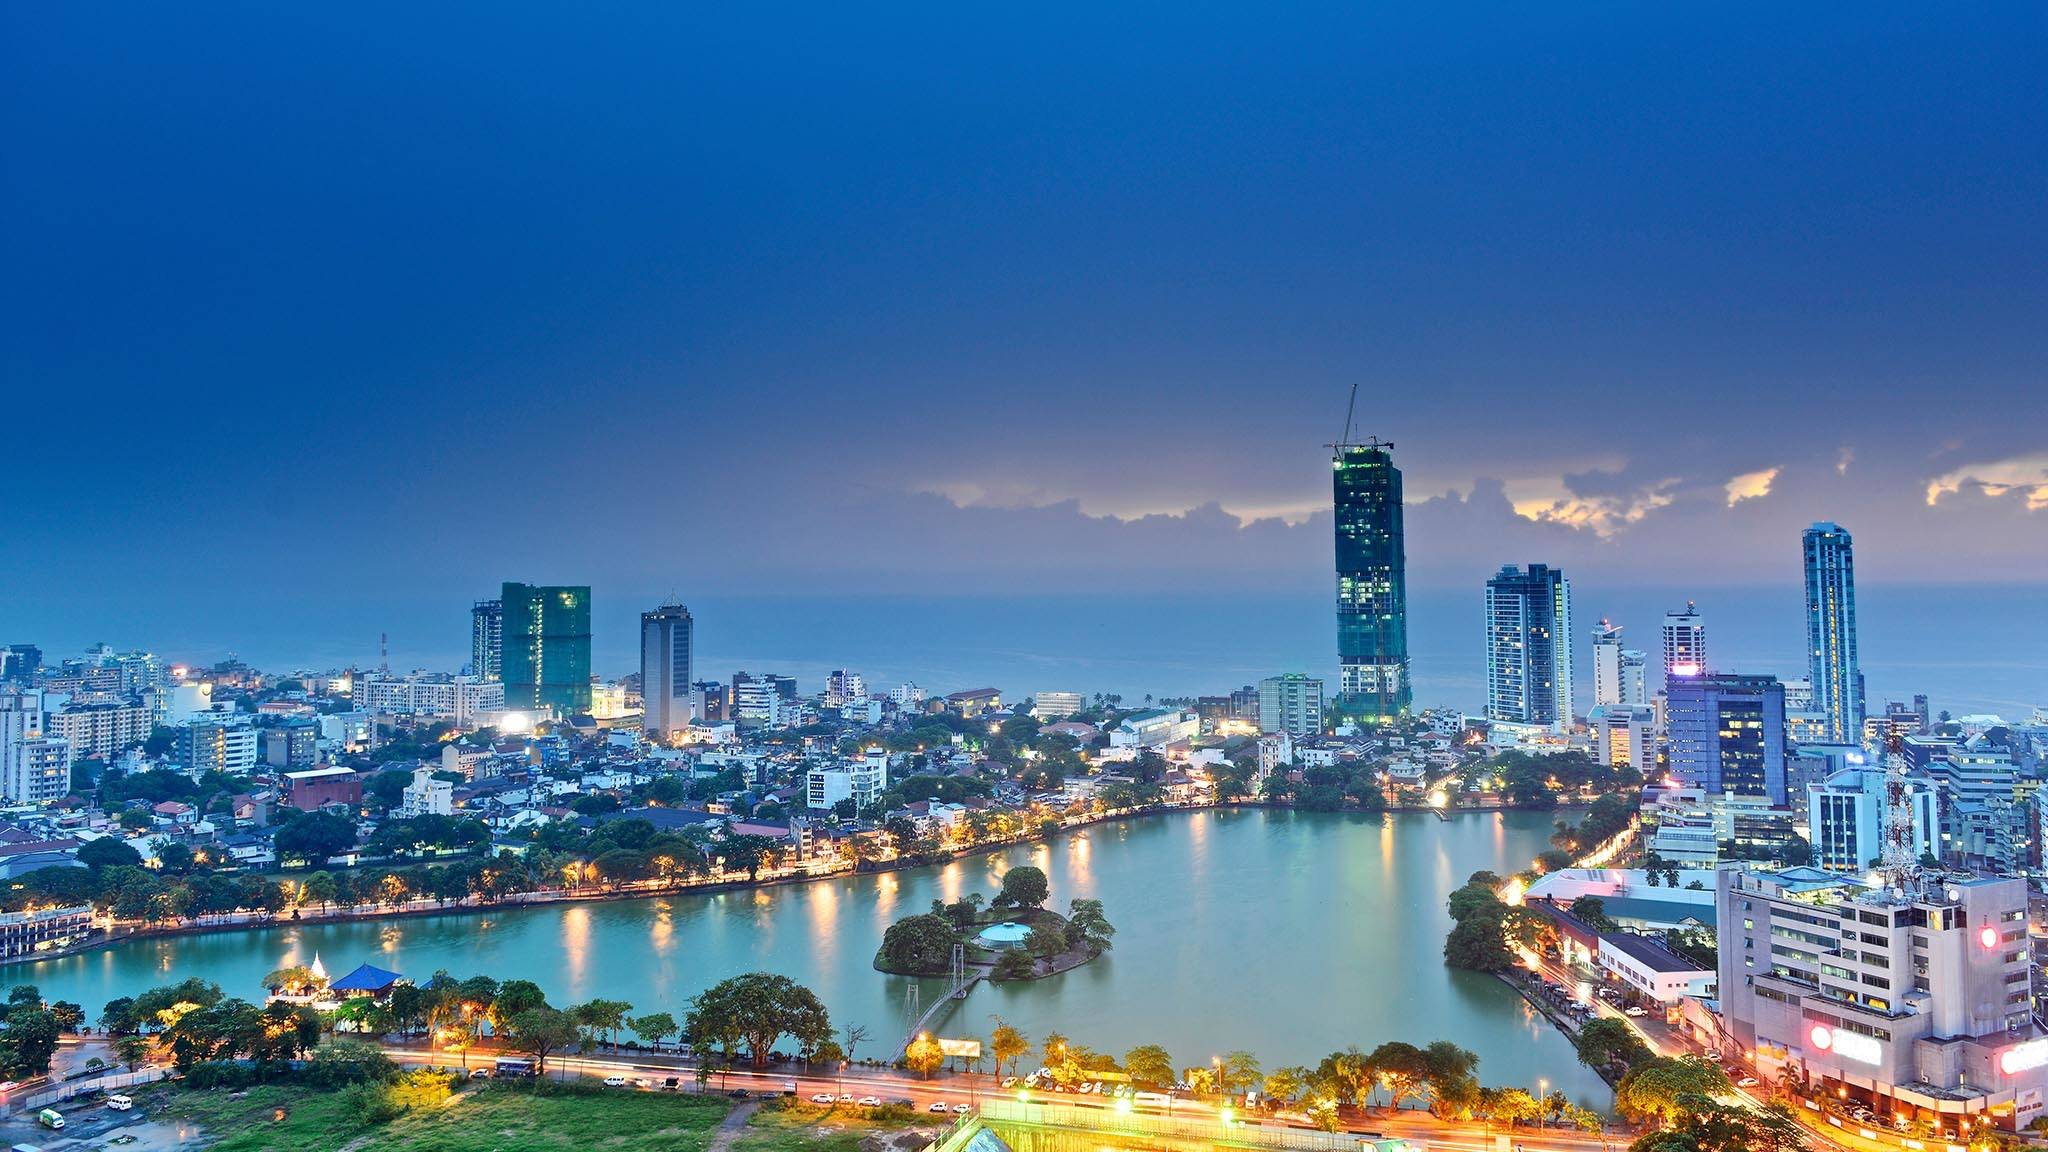 Colombo, capital of Sri Lanka